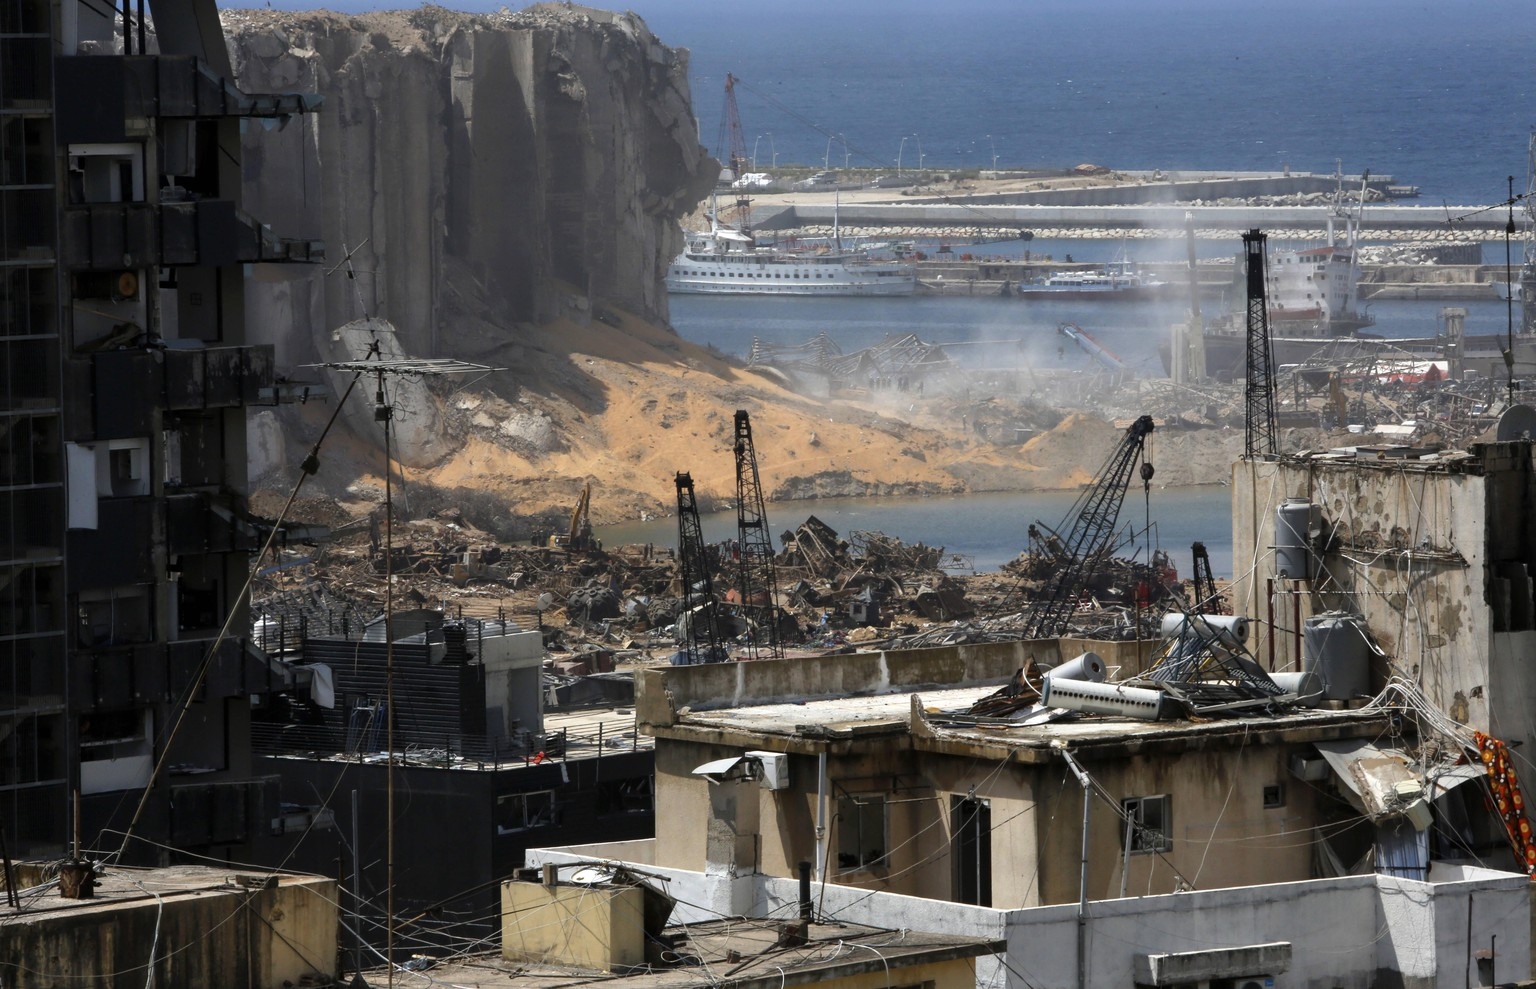 August 9, 2020, Beirut, Beirut, Lebanon: A picture shows damaged buildings in the aftermath of a colossal explosion that occurred days prior due to a huge pile of ammonium nitrate that had languished for years at a port warehouse. The huge chemical explosion that hit Beirut s port, devastating large parts of the Lebanese capital and claiming over 150 lives, left a 43-metre 141 foot deep crater, a security official said. The blast Tuesday, which was felt across the country and as far as the island of Cyprus, was recorded by the sensors of the American Institute of Geophysics USGS as having the power of a magnitude 3.3 earthquake Beirut Lebanon - ZUMAews 0047790314st Copyright: xMarwanxTahtahx